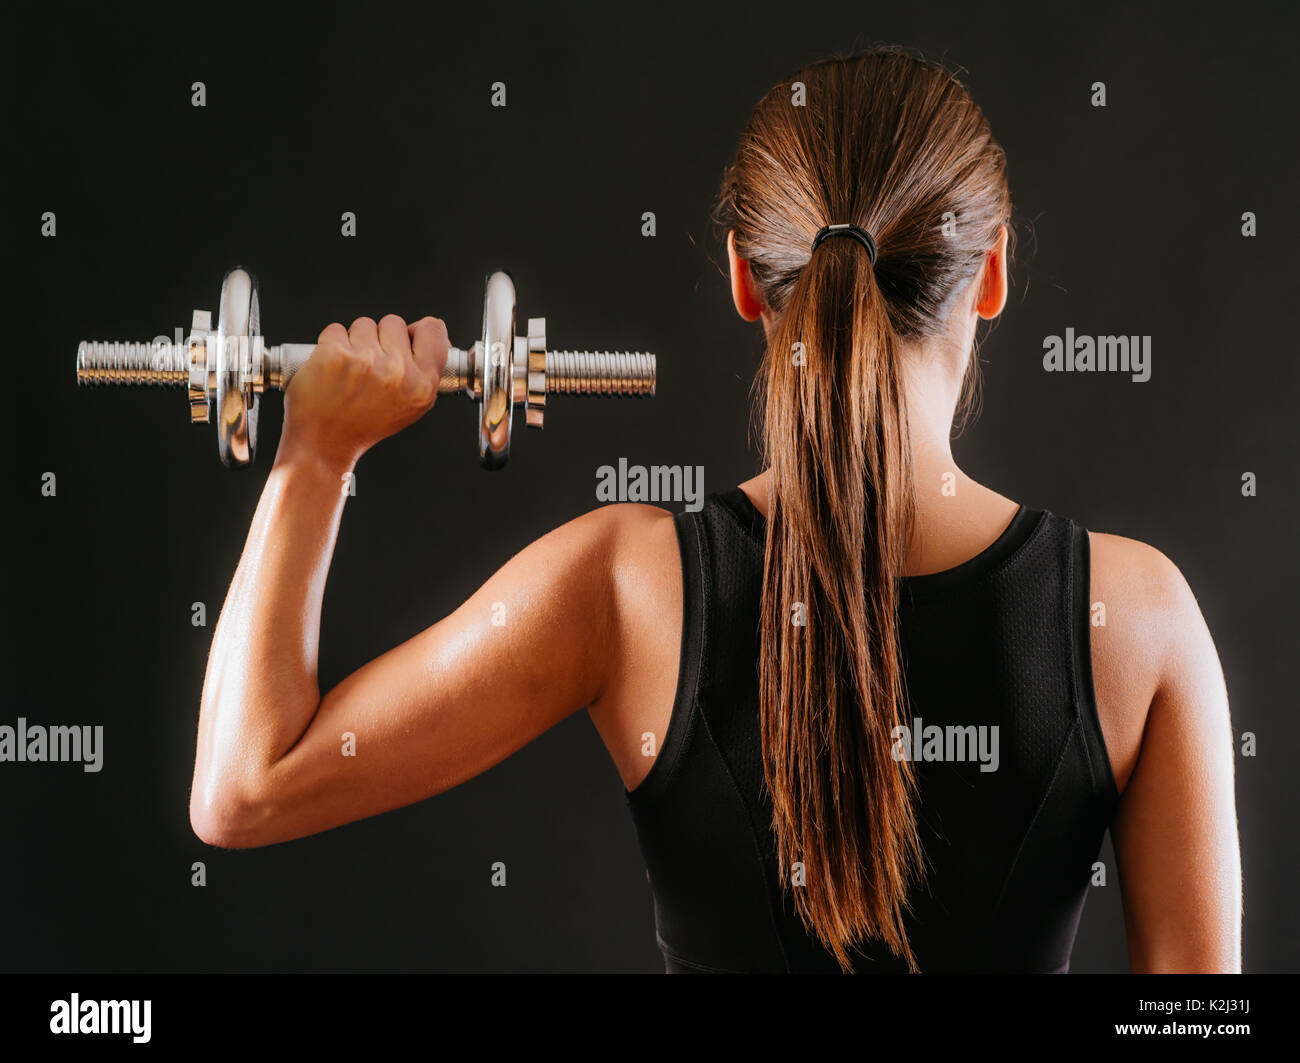 Photo of the back of a young woman doing a shoulder press with a dumbbell over a dark background. - Stock Image